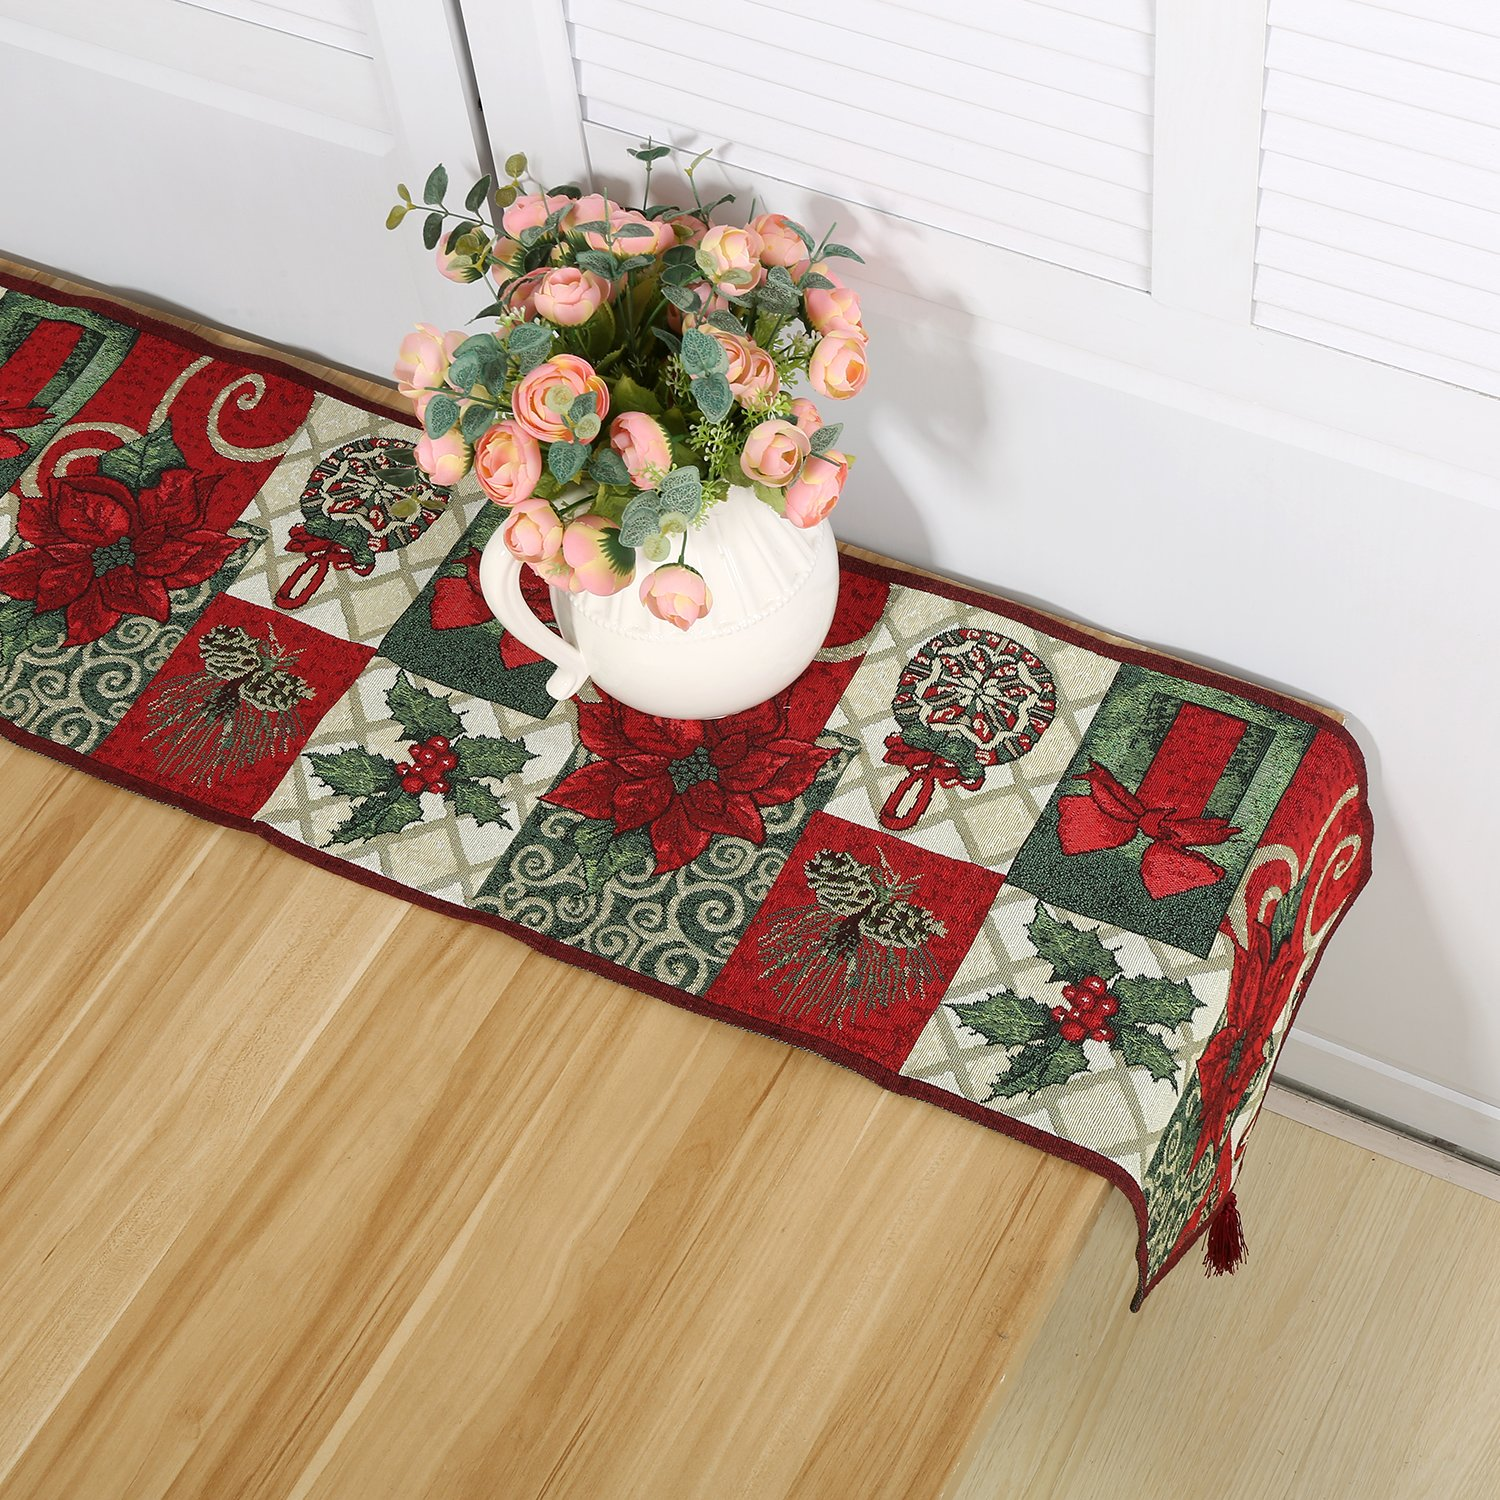 Meiduoduo Christmas Decorative Table Runner 13 x 71inch Red Poinsettia Christmas Flower Soft Table Cloth Home Wedding Party Table Decor 1 Table Runner